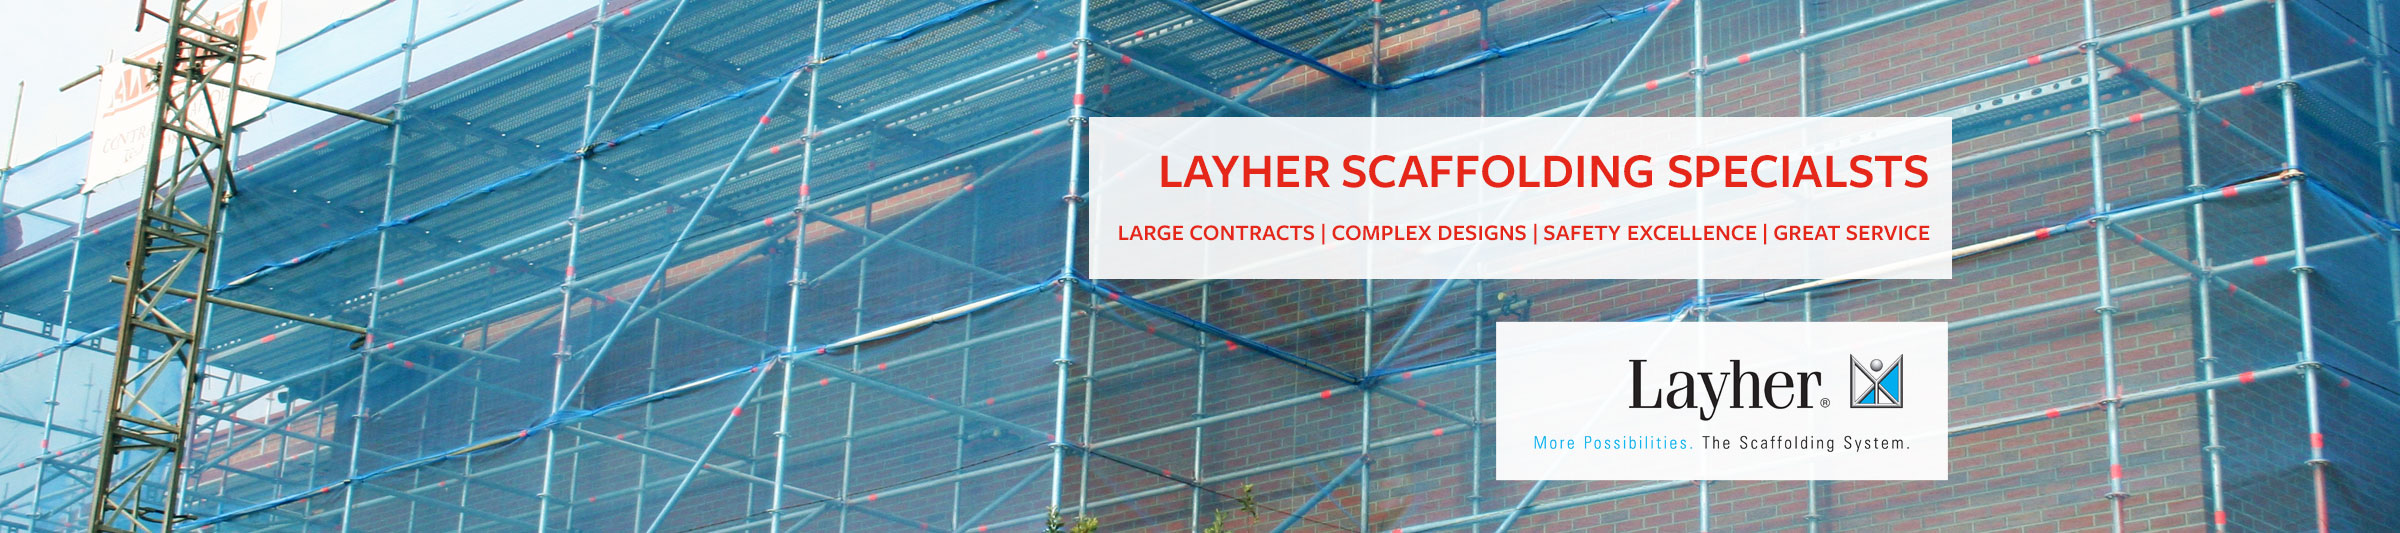 LAYHER SPECIALISTS